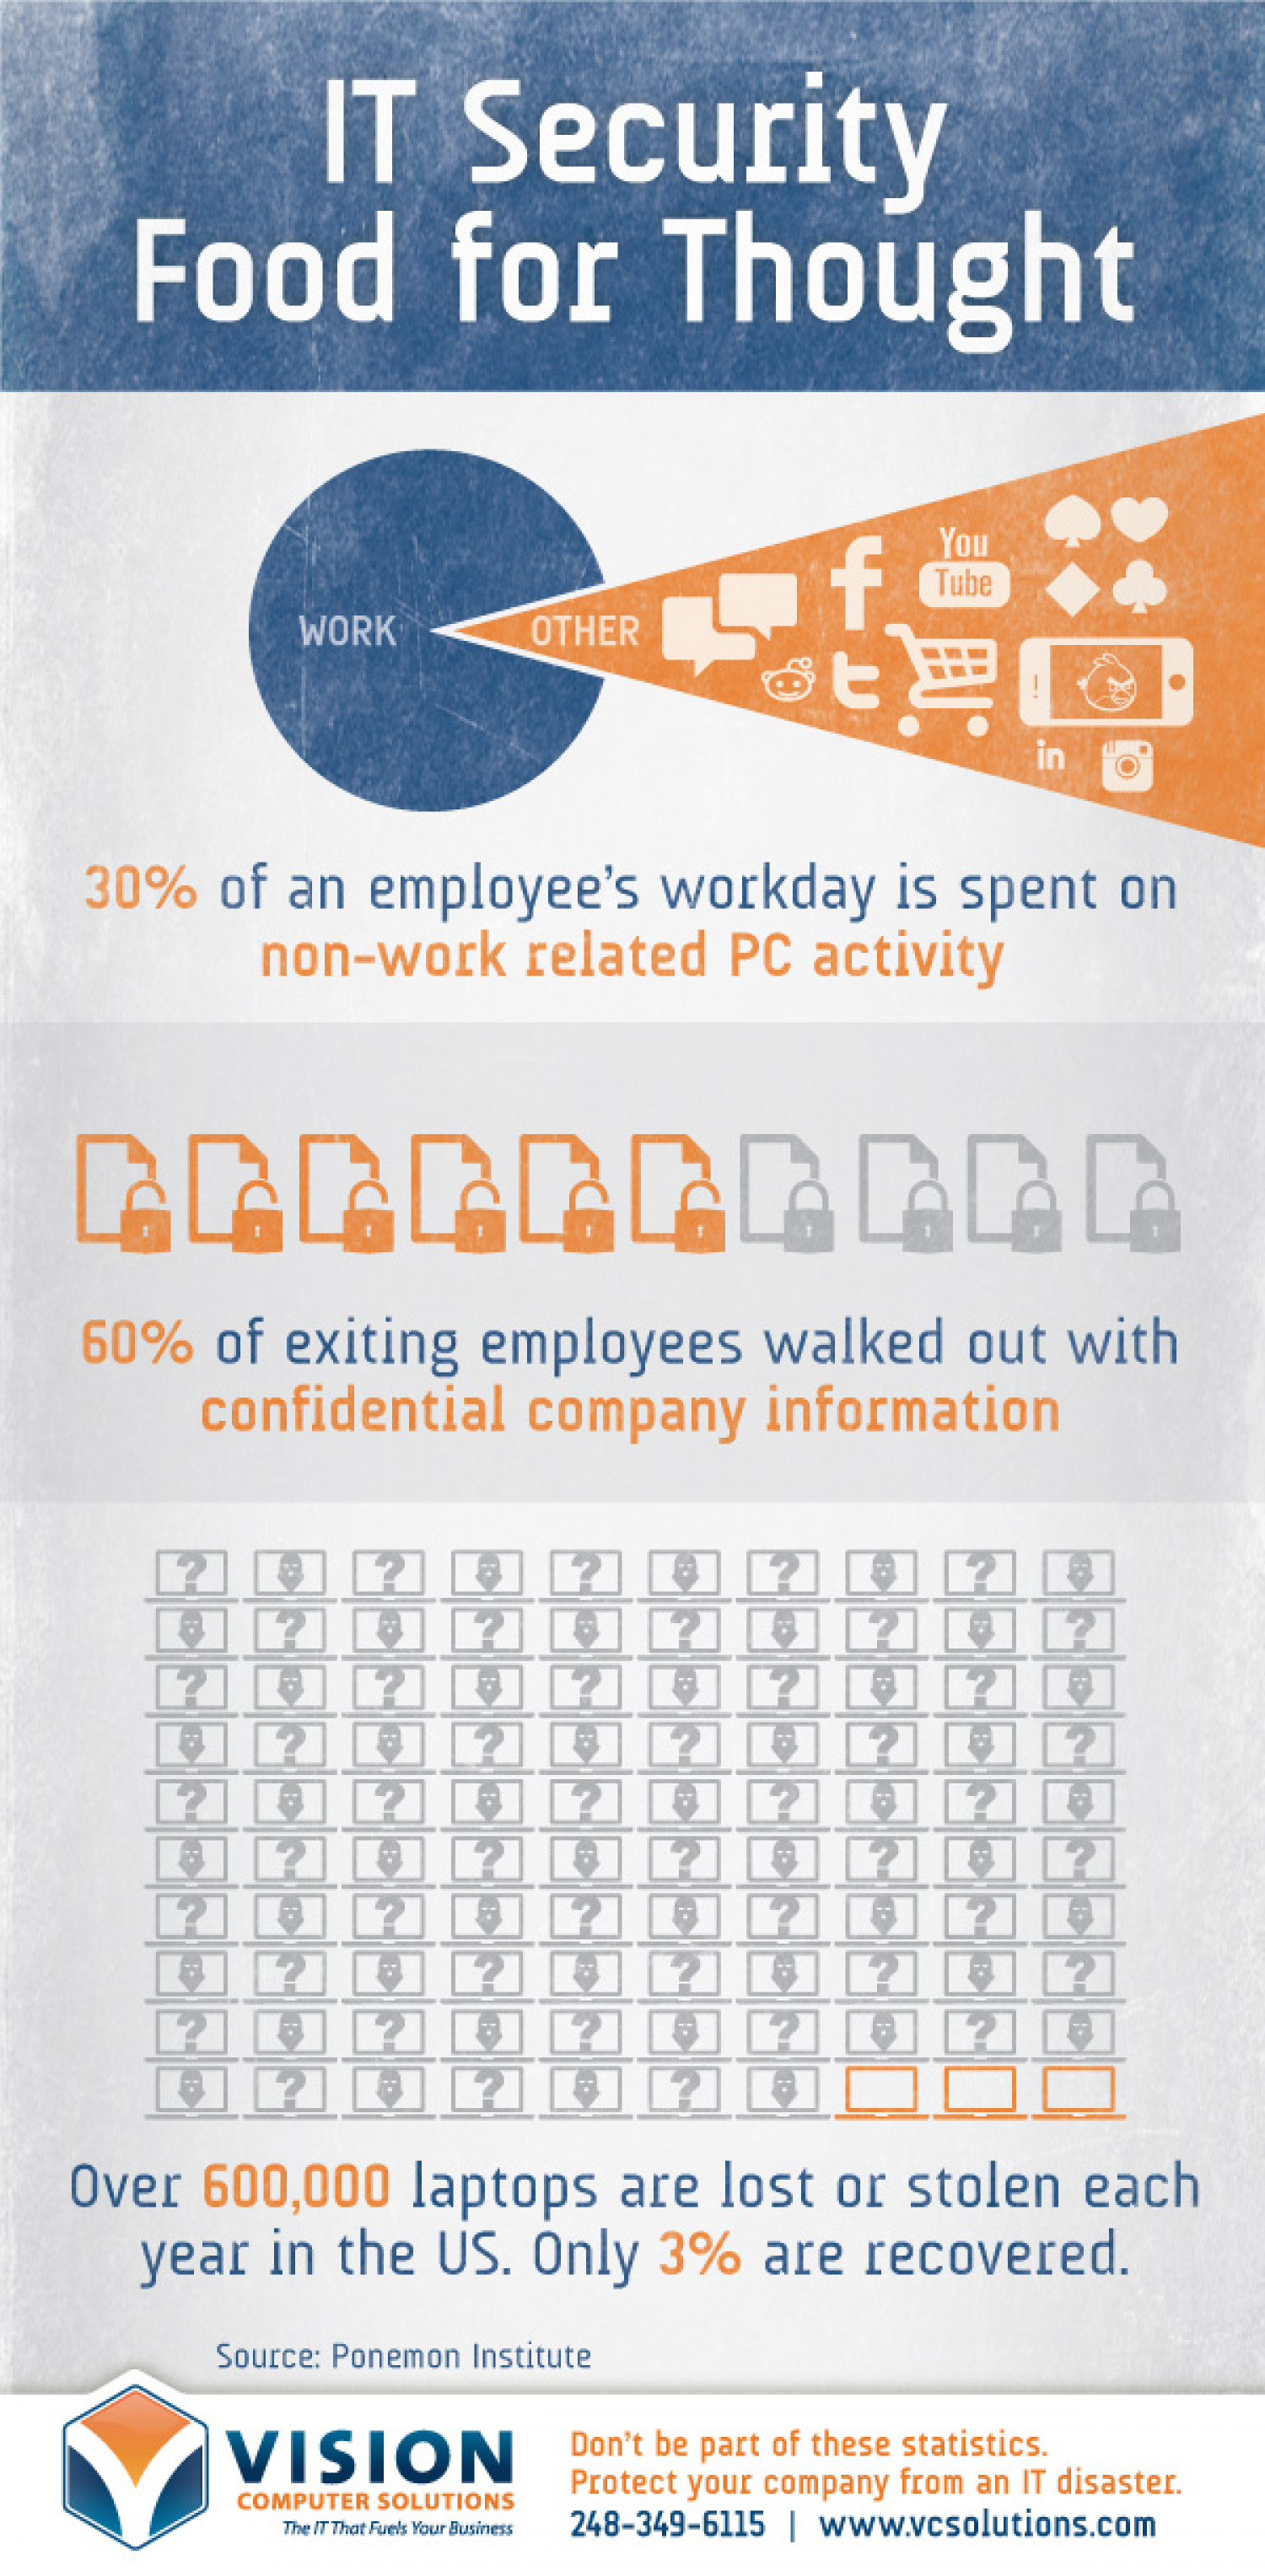 IT Security Food for Thought Infographic